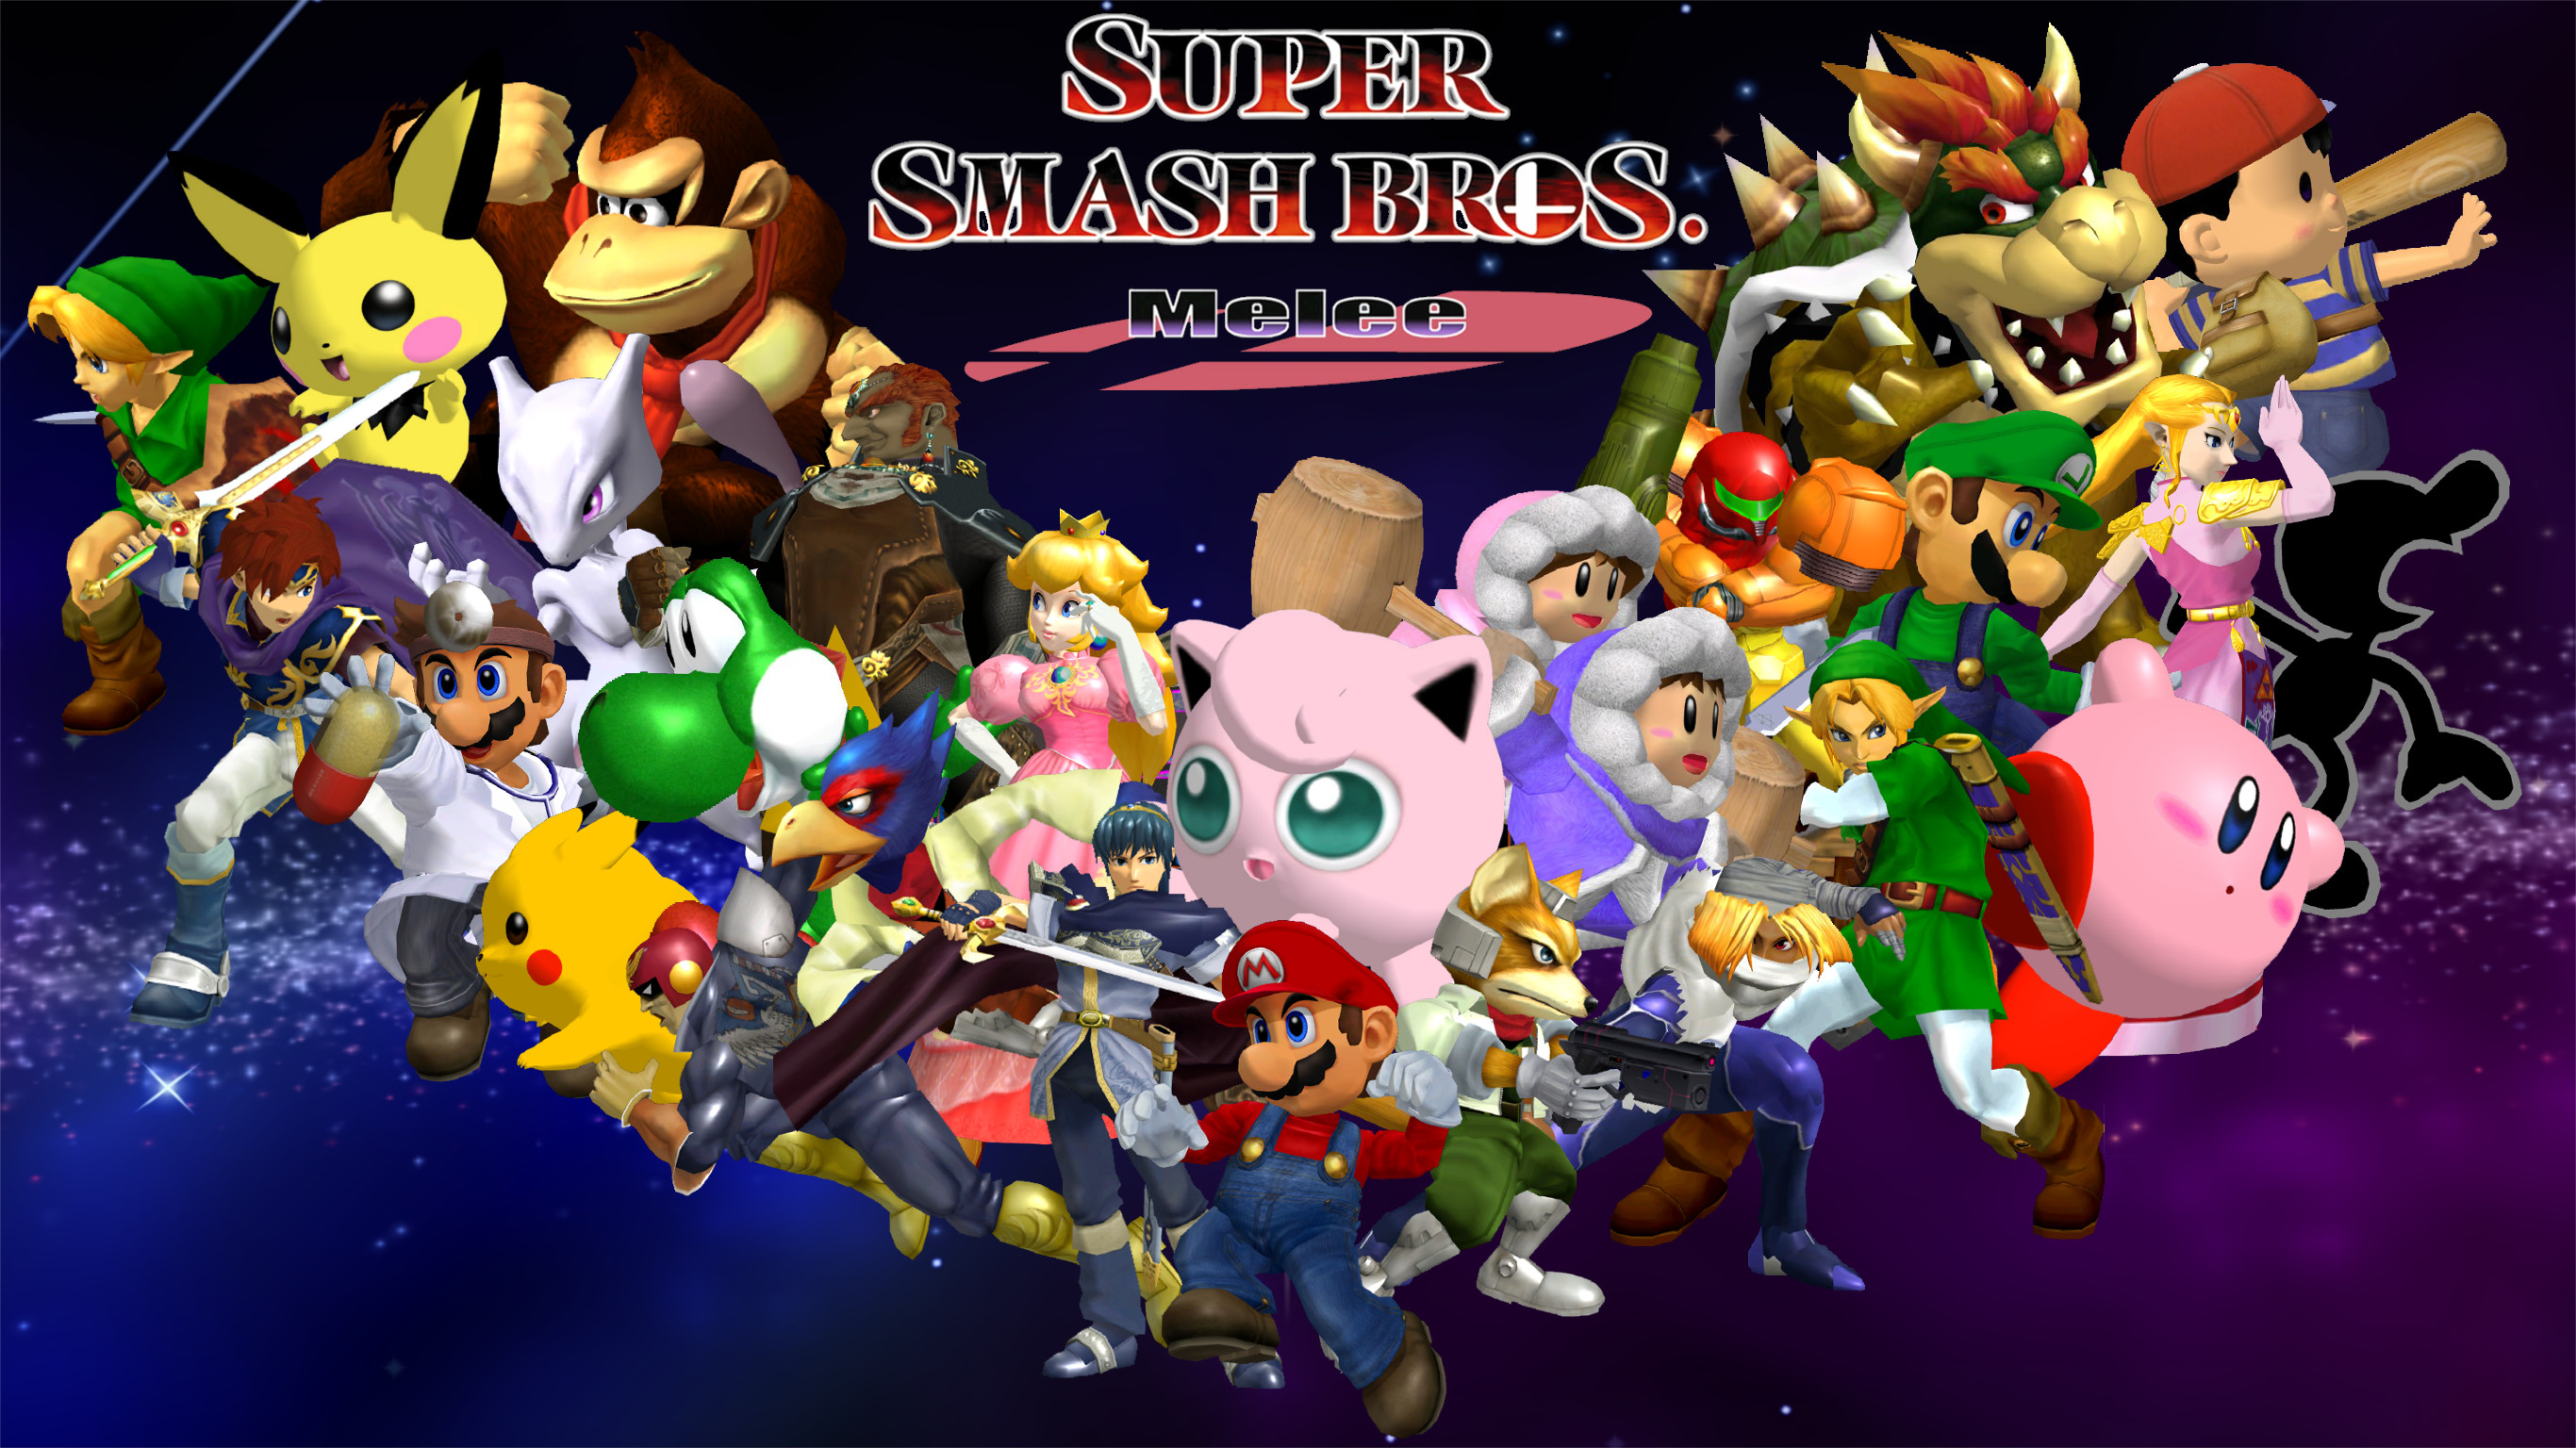 … Super Smash Bros Melee Wallpaper by Game34rules